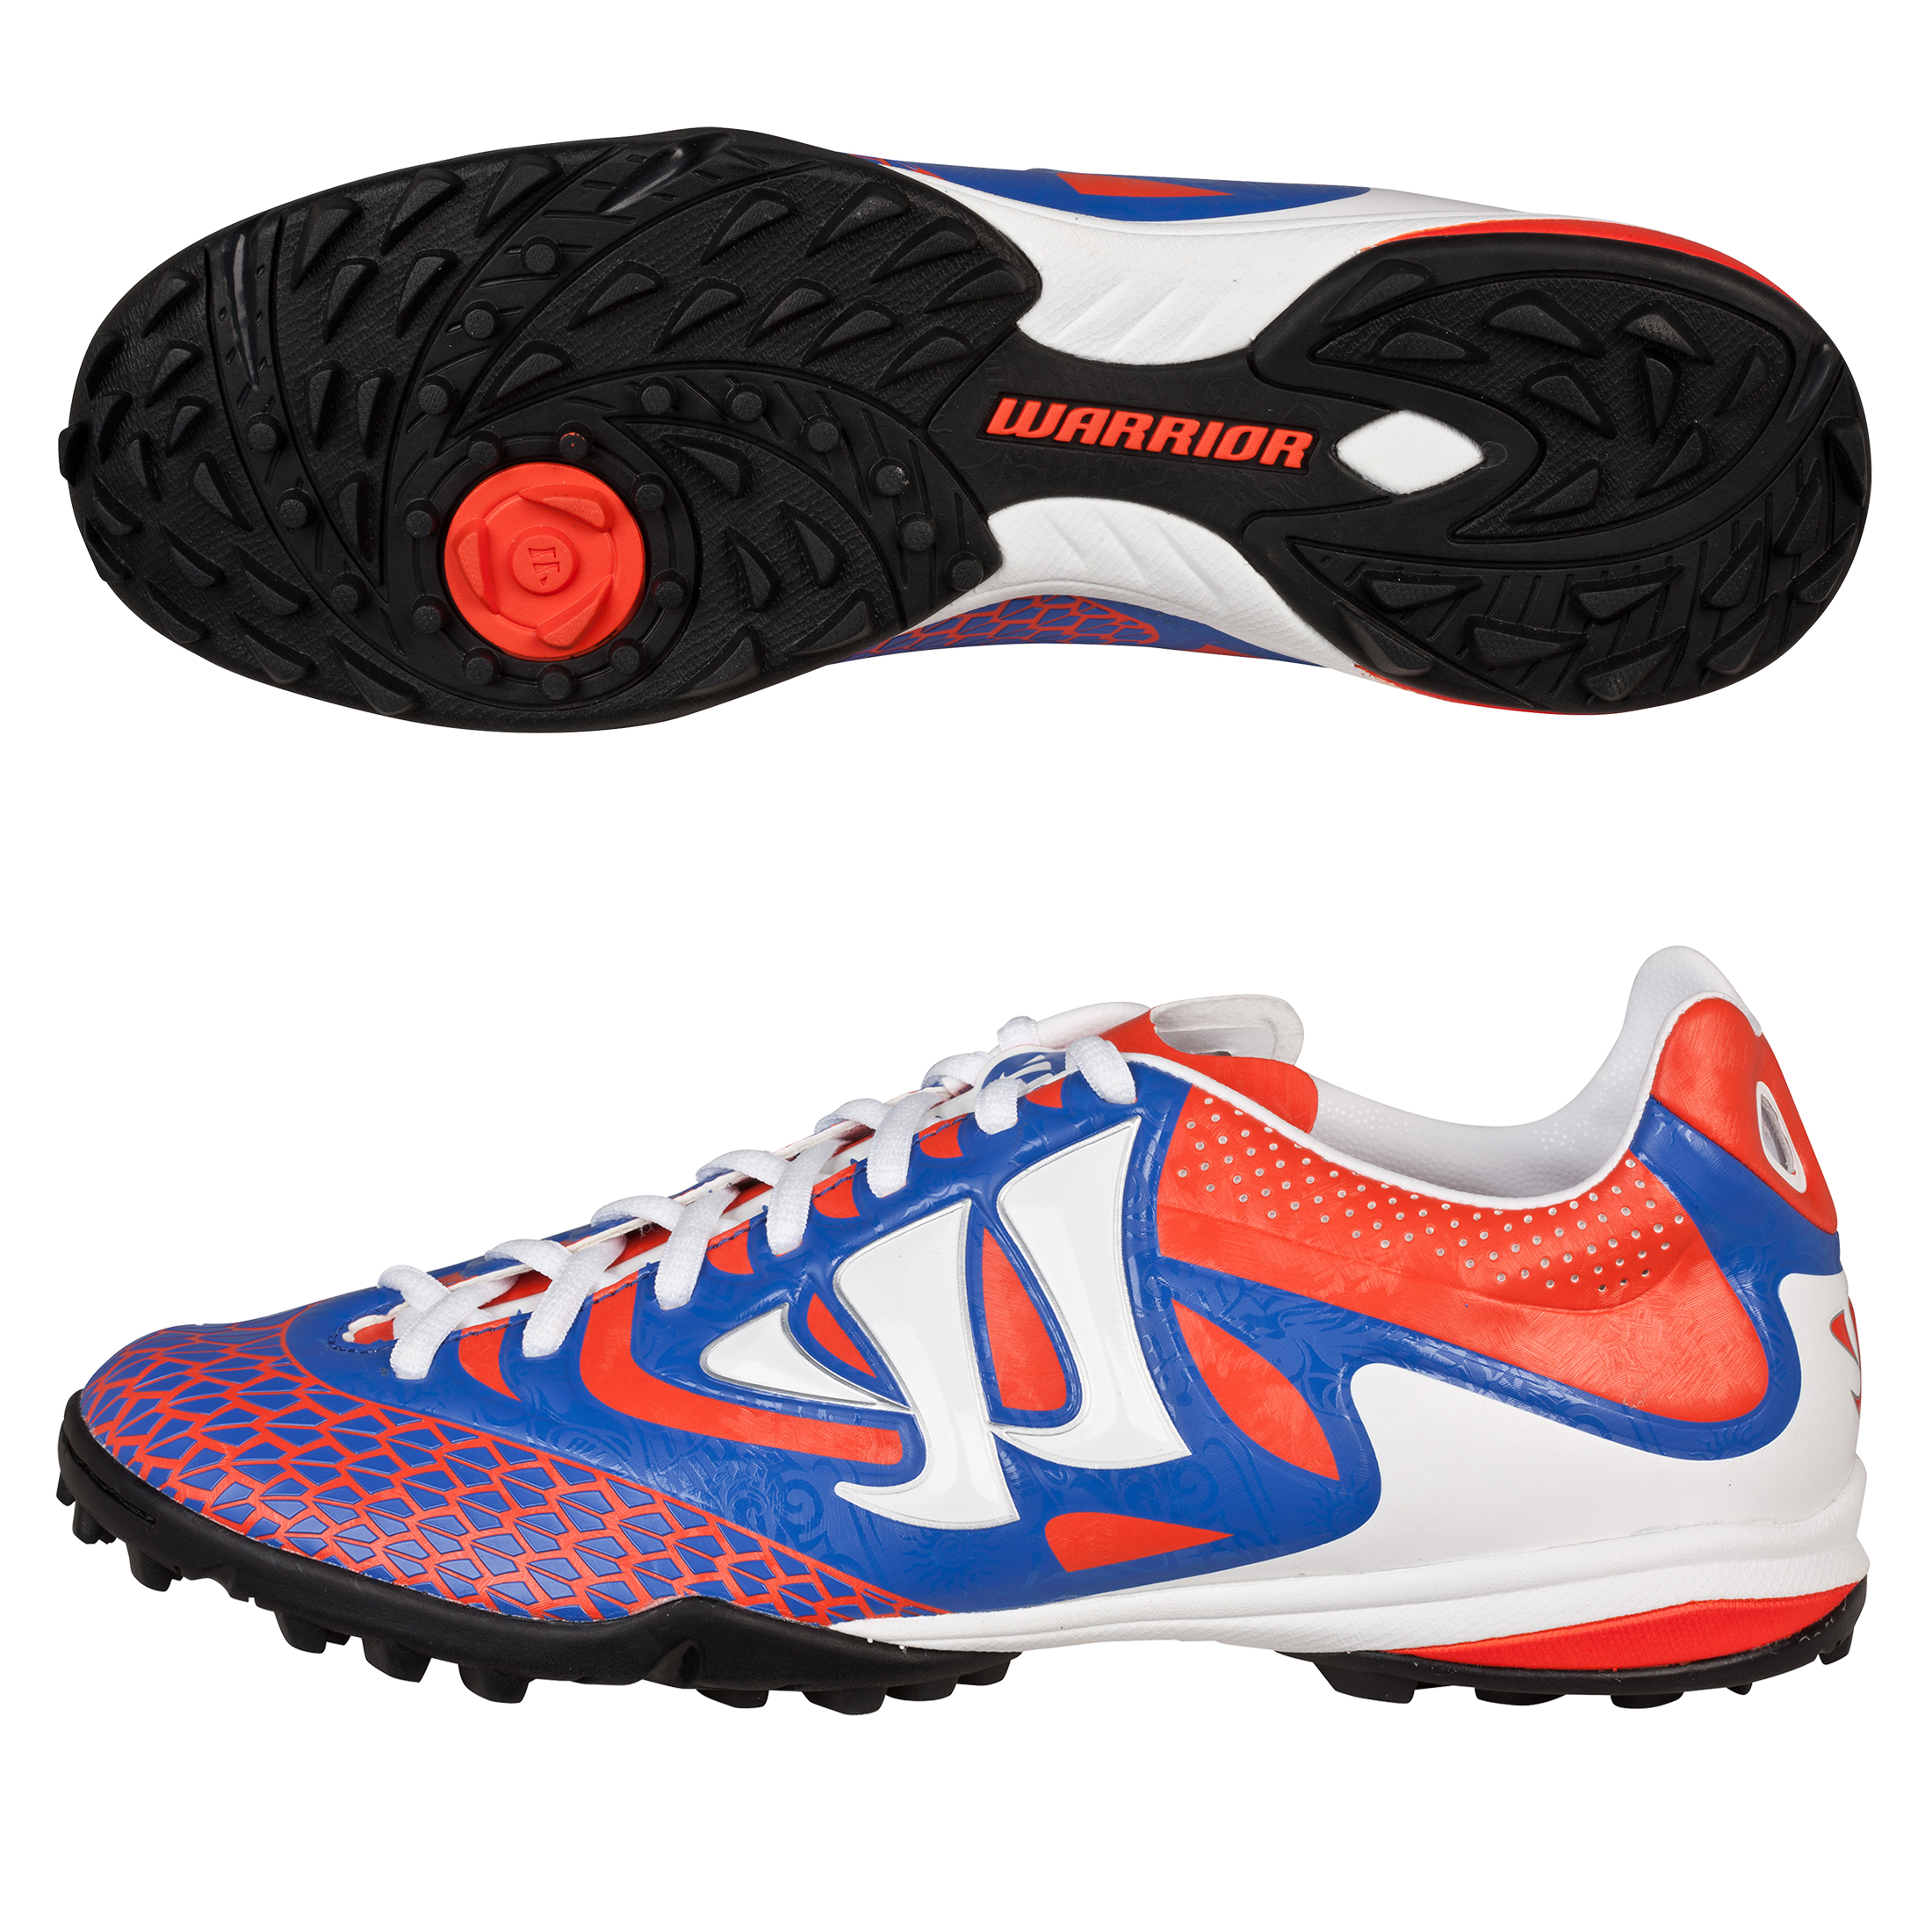 Warrior Sports Skreamer Combat Astroturf Trainers - Spicy Orange/Baja Blue/White